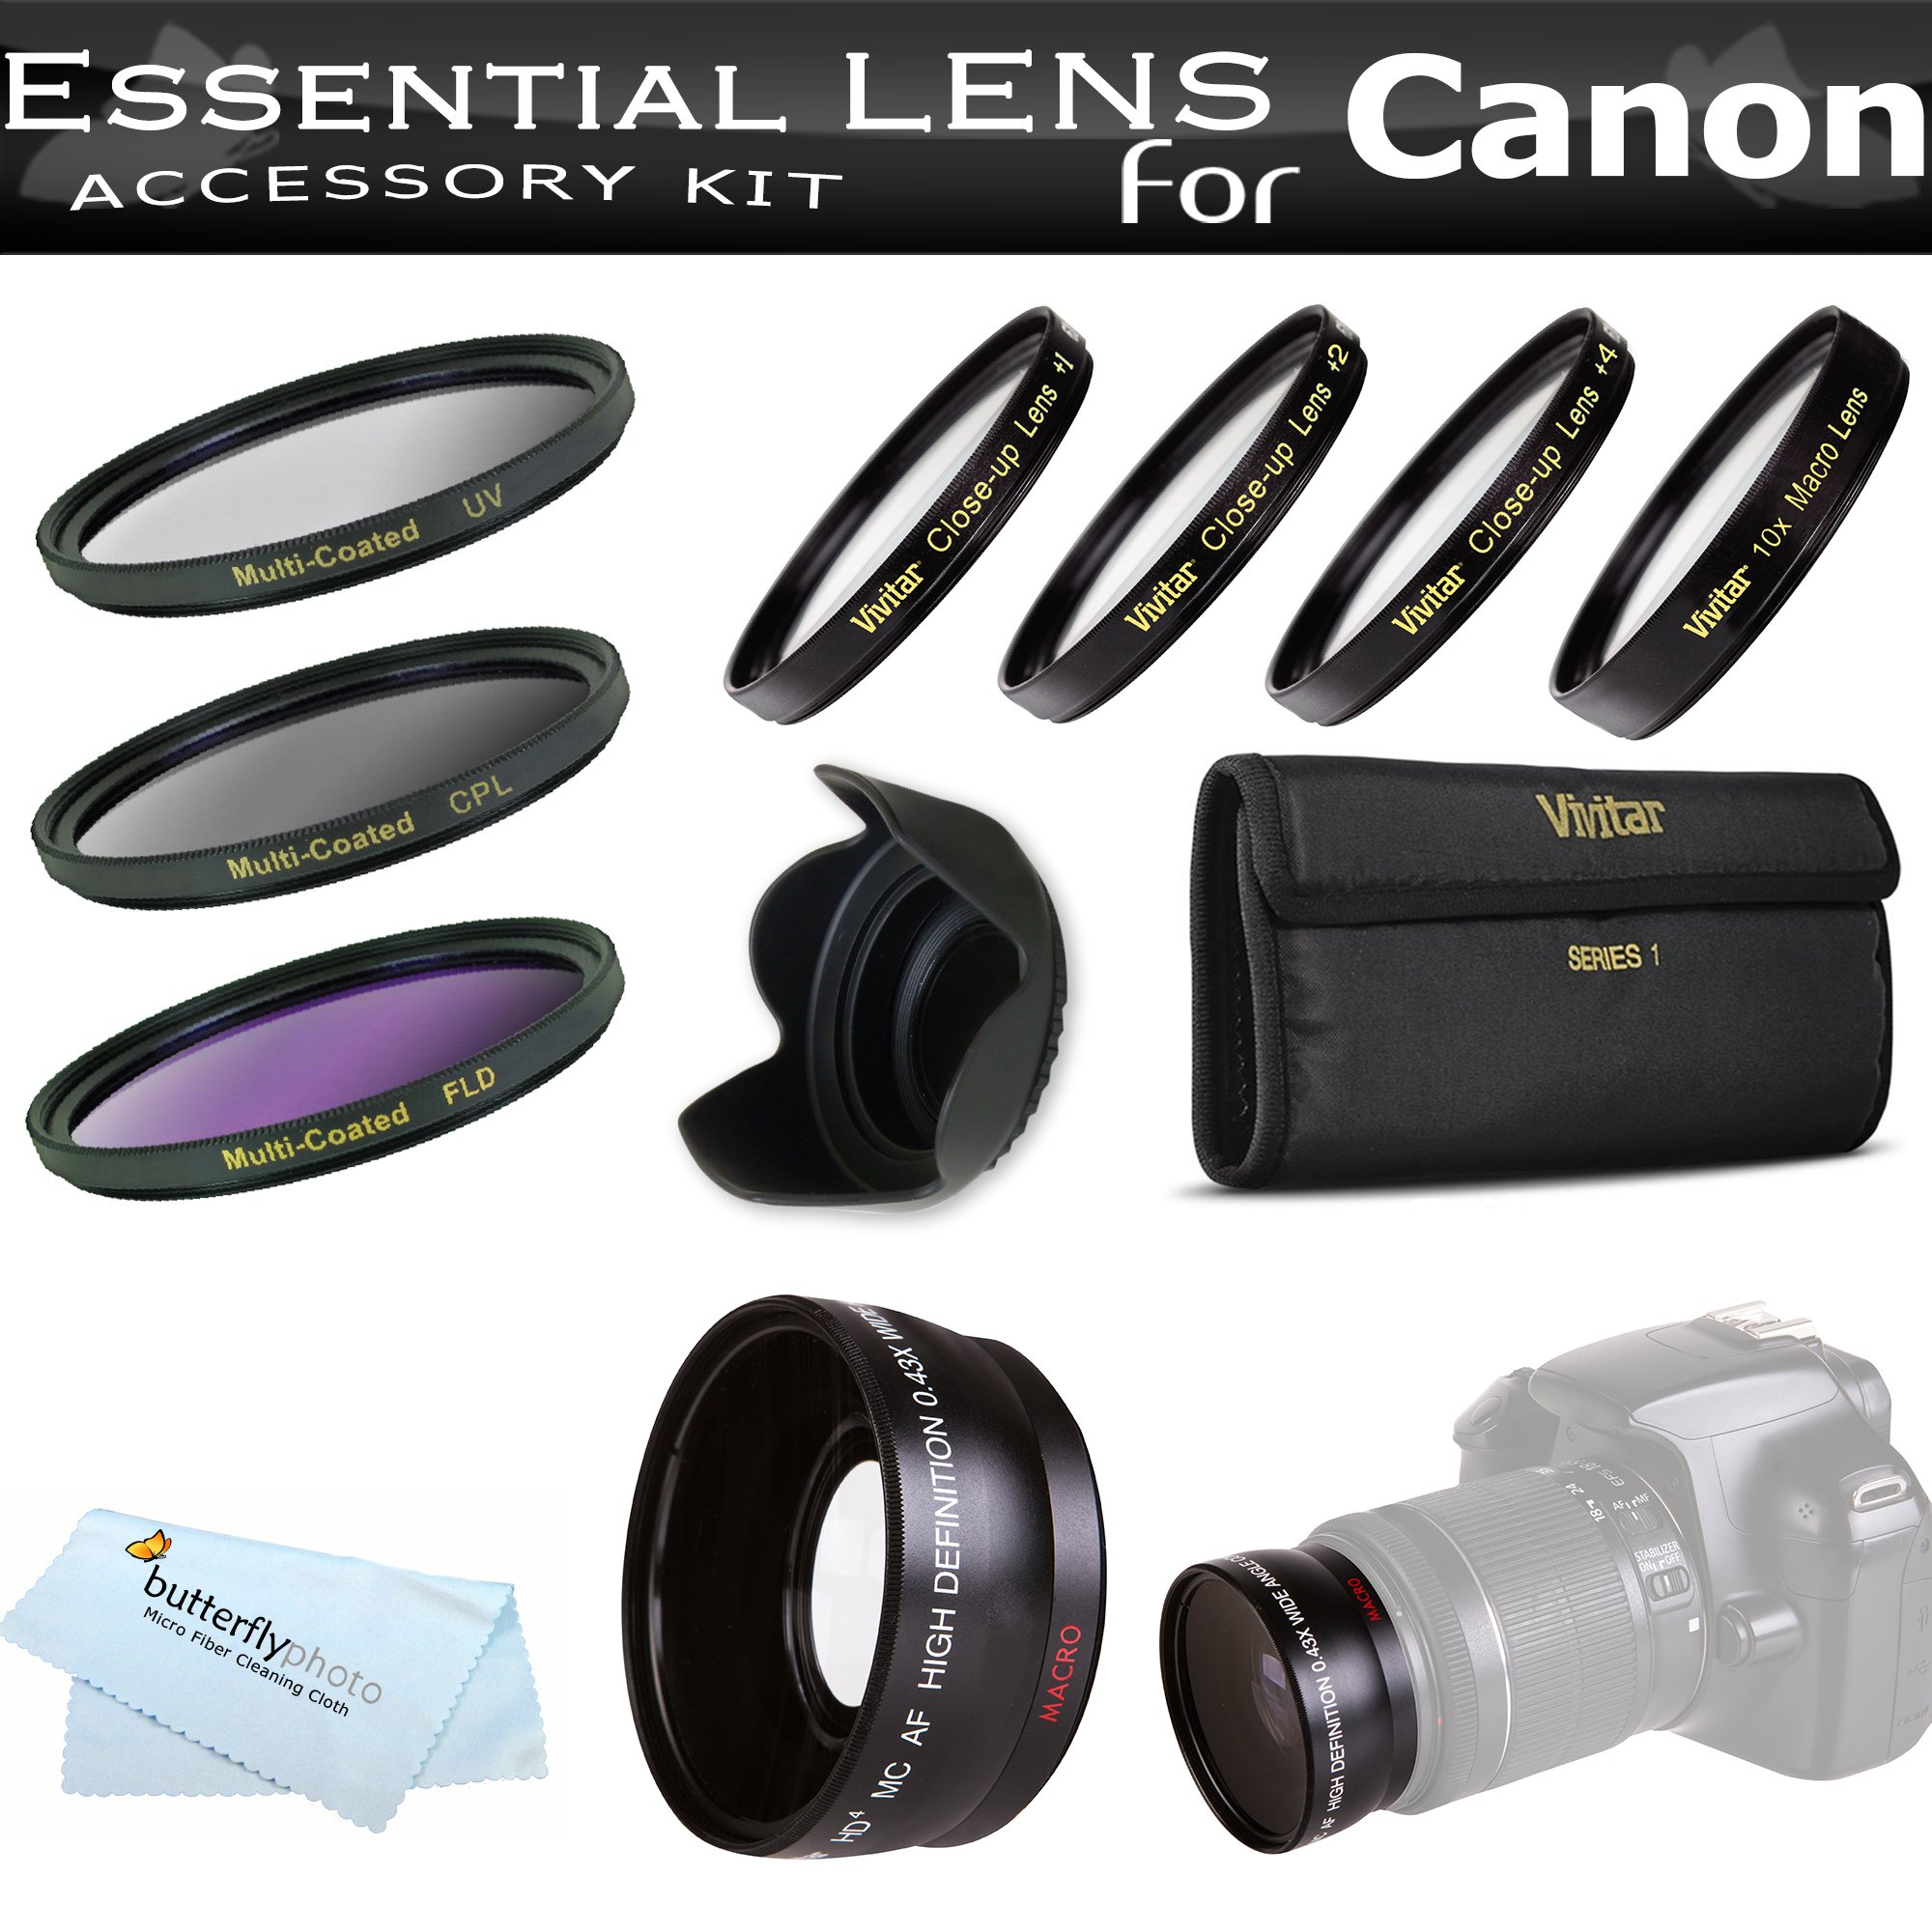 Essential Lens Kit For The Canon SX30IS SX30 IS SX40HS SX40 HS Digital Camera Includes HD .43x Wide Angle Lens + 52MM Close Up Lens Kit Includes +1 +2 +4 +10 + 3pc High Res Filter Kit (UV-CPL-FLD) + Lens Hood + MicroFiber Cleaning Cloth by ButterflyPhoto